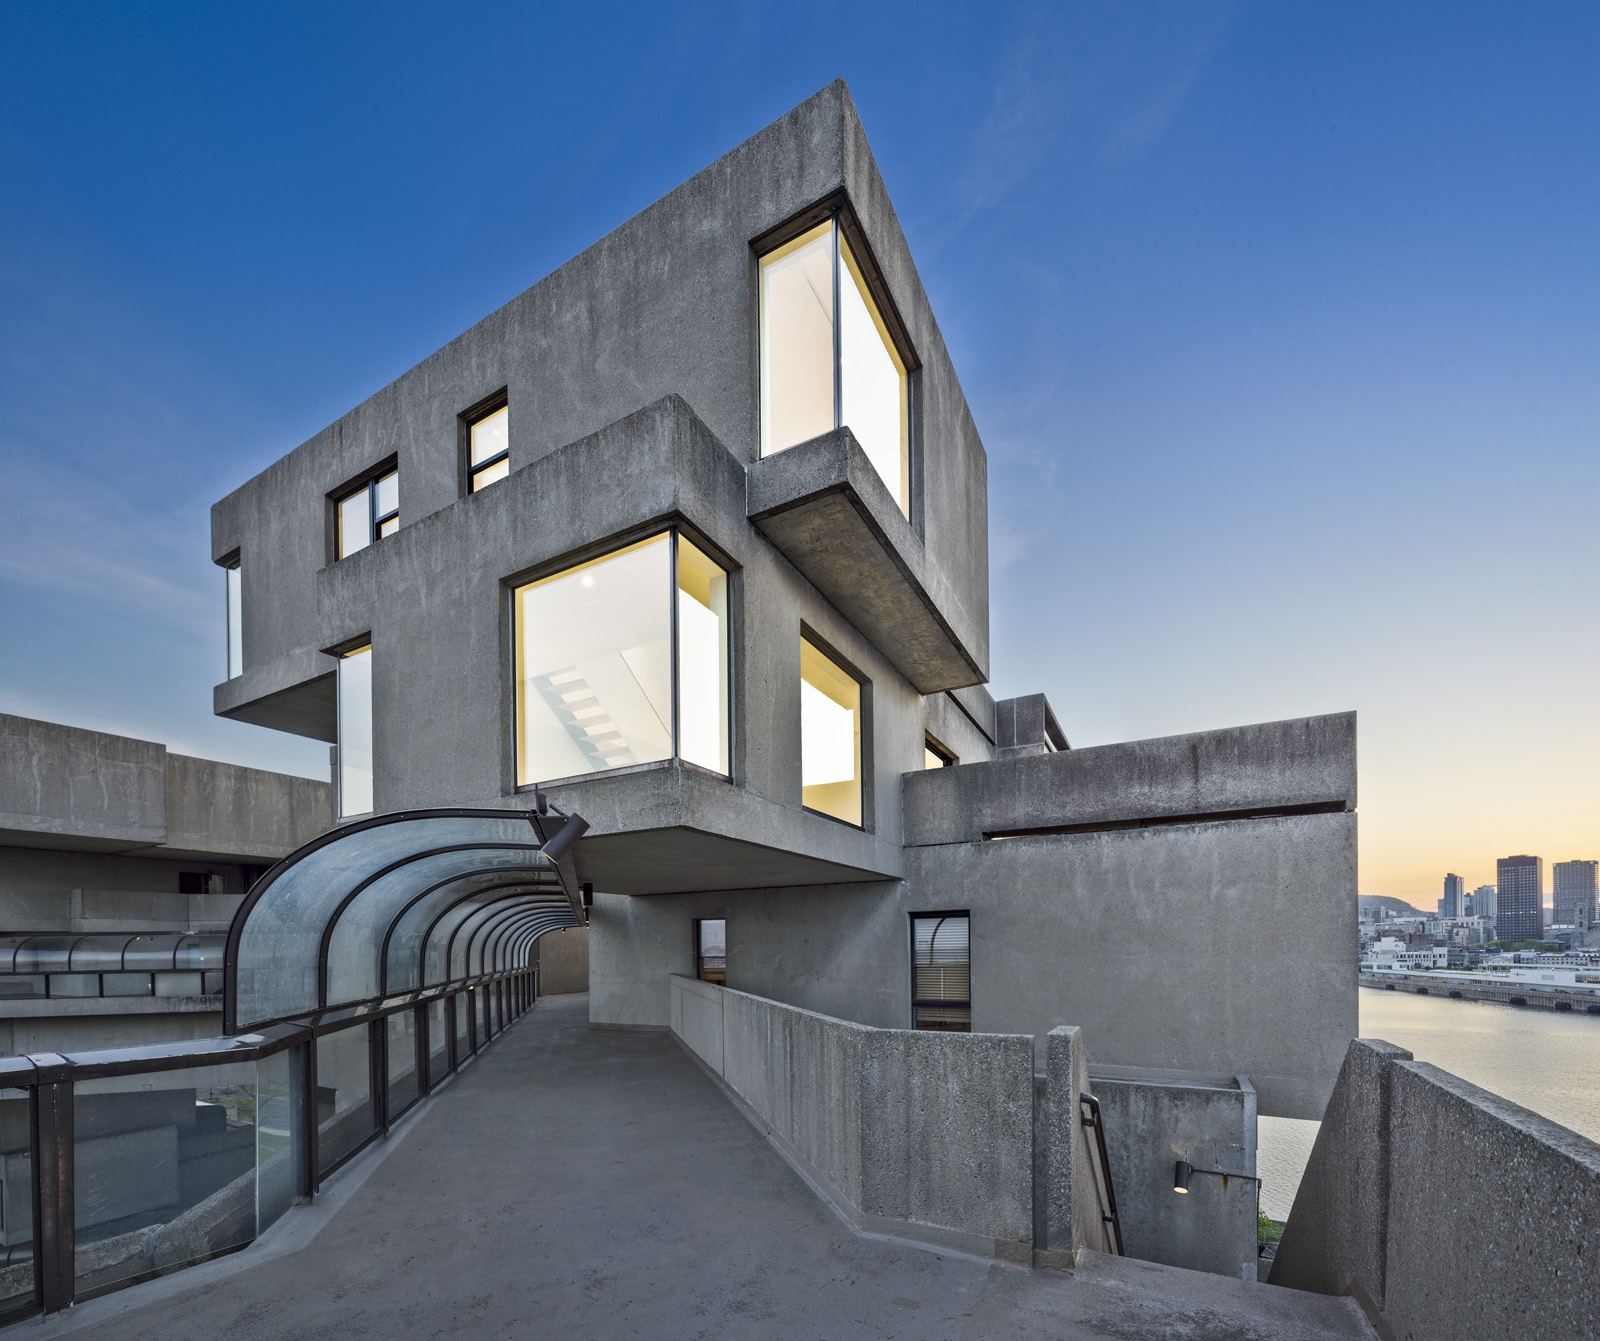 The newly refurbished unit at Habitat 67. Photograph by Marc Cramer & Thomas Miau